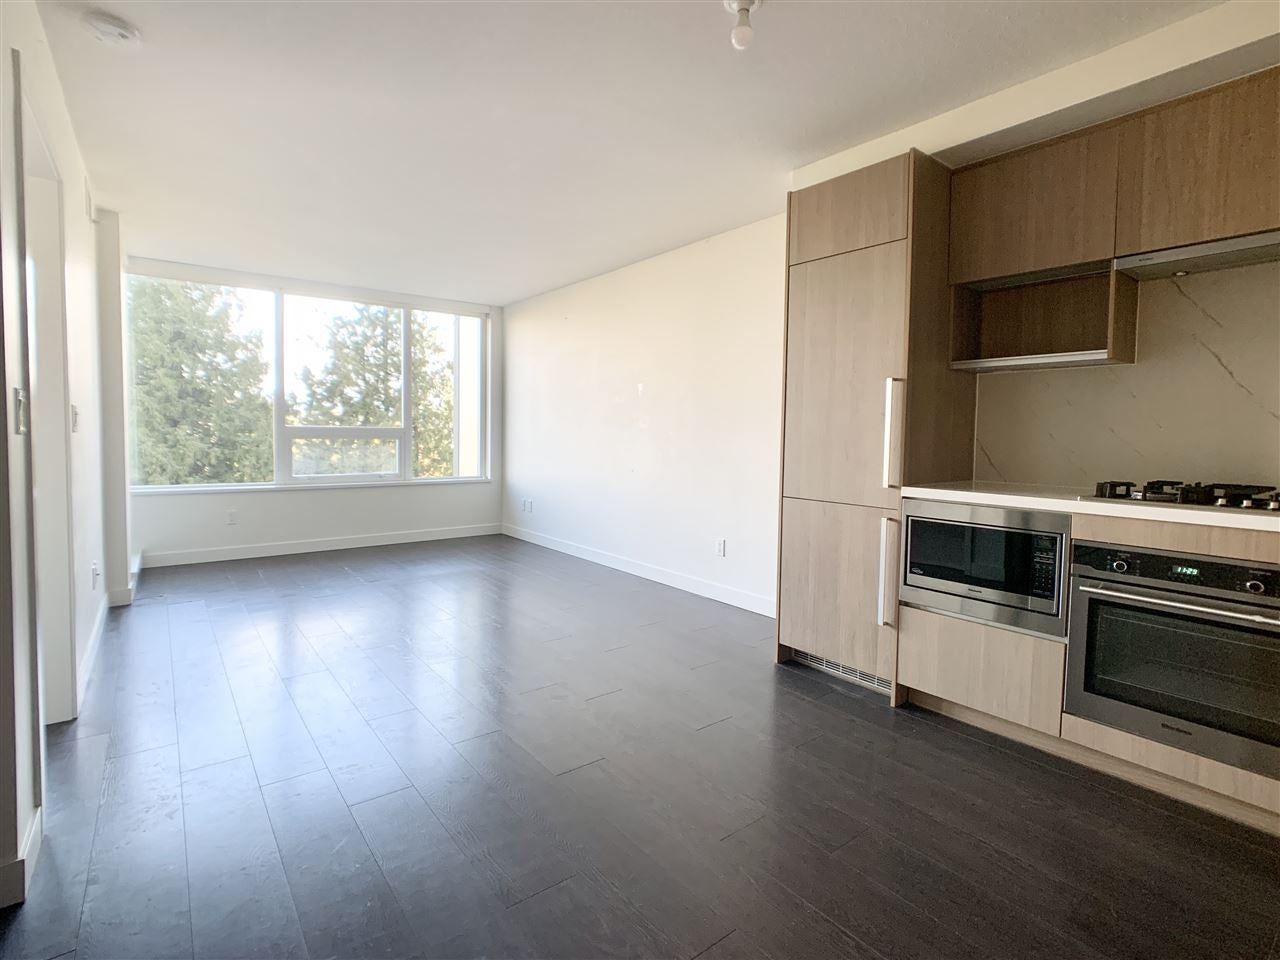 810 3131 KETCHESON ROAD - West Cambie Apartment/Condo for sale, 1 Bedroom (R2528889)